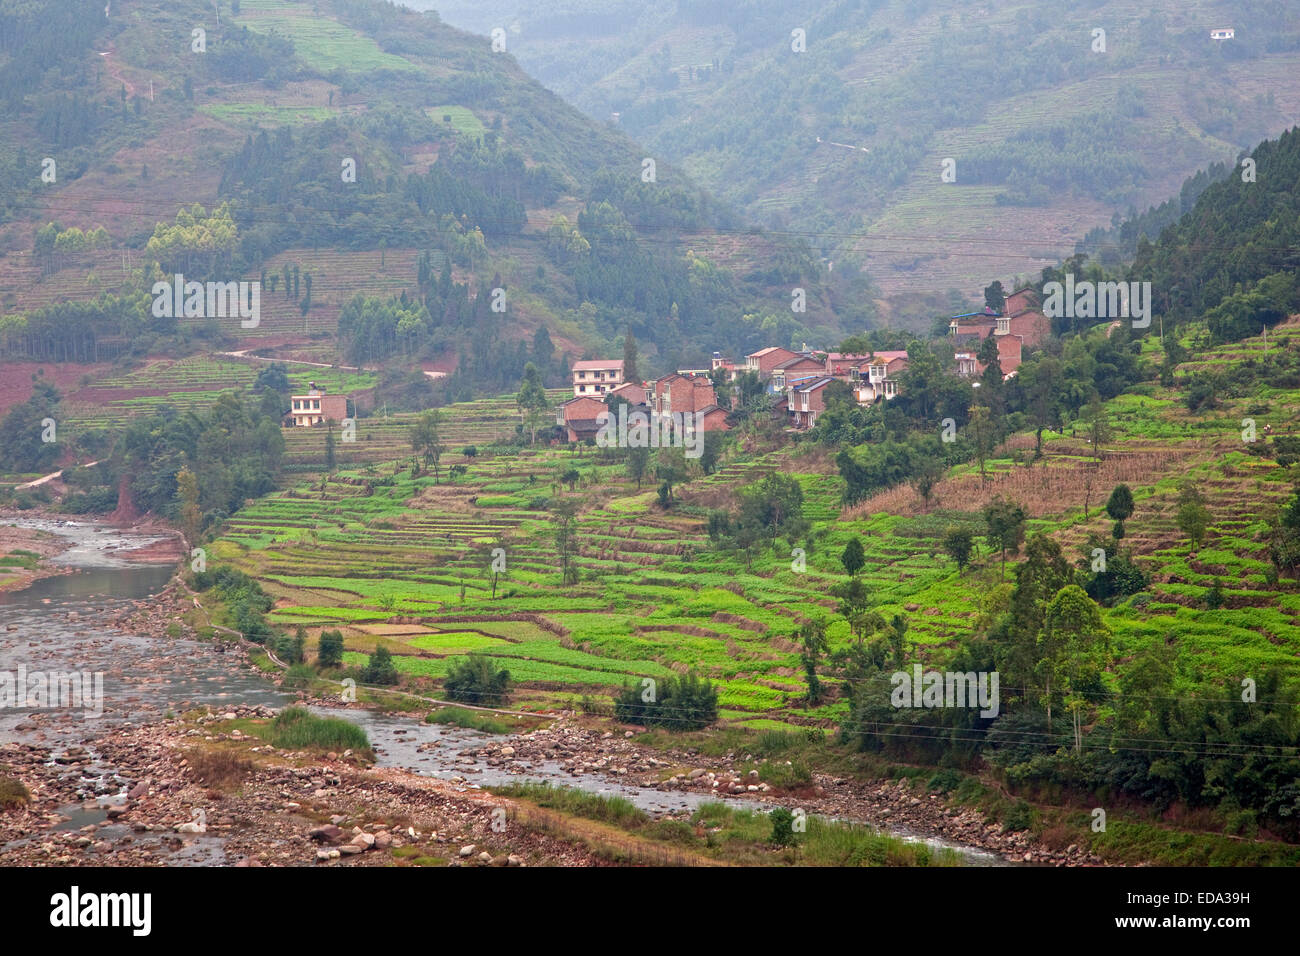 Rural village and terraced rice paddies in southern China, Zhaotong District, Yunnan Province, China - Stock Image